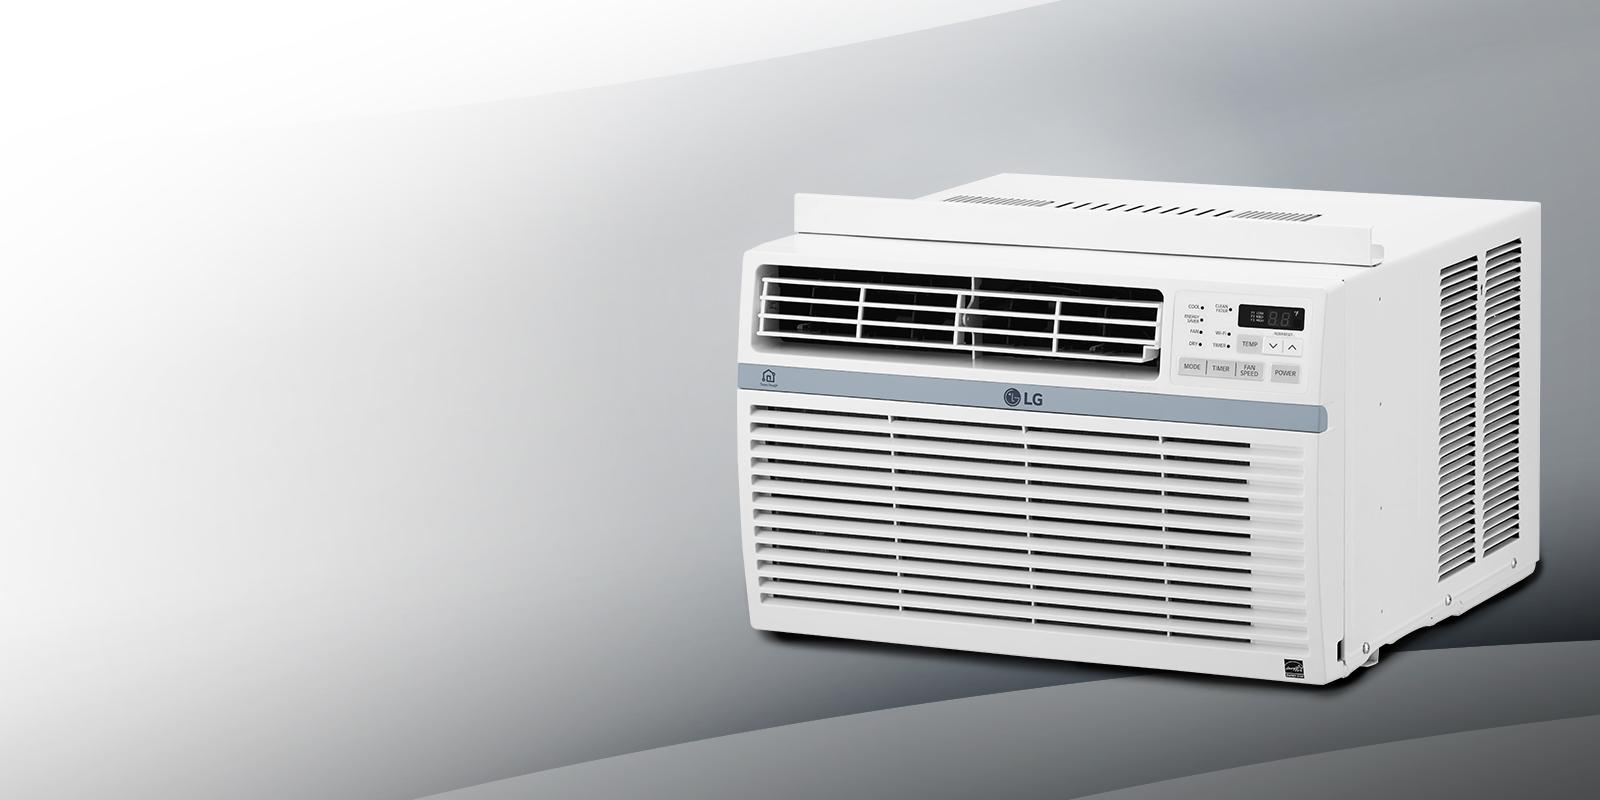 LG Air Conditioner Units: Stay Cool & Comfortable | LG USA